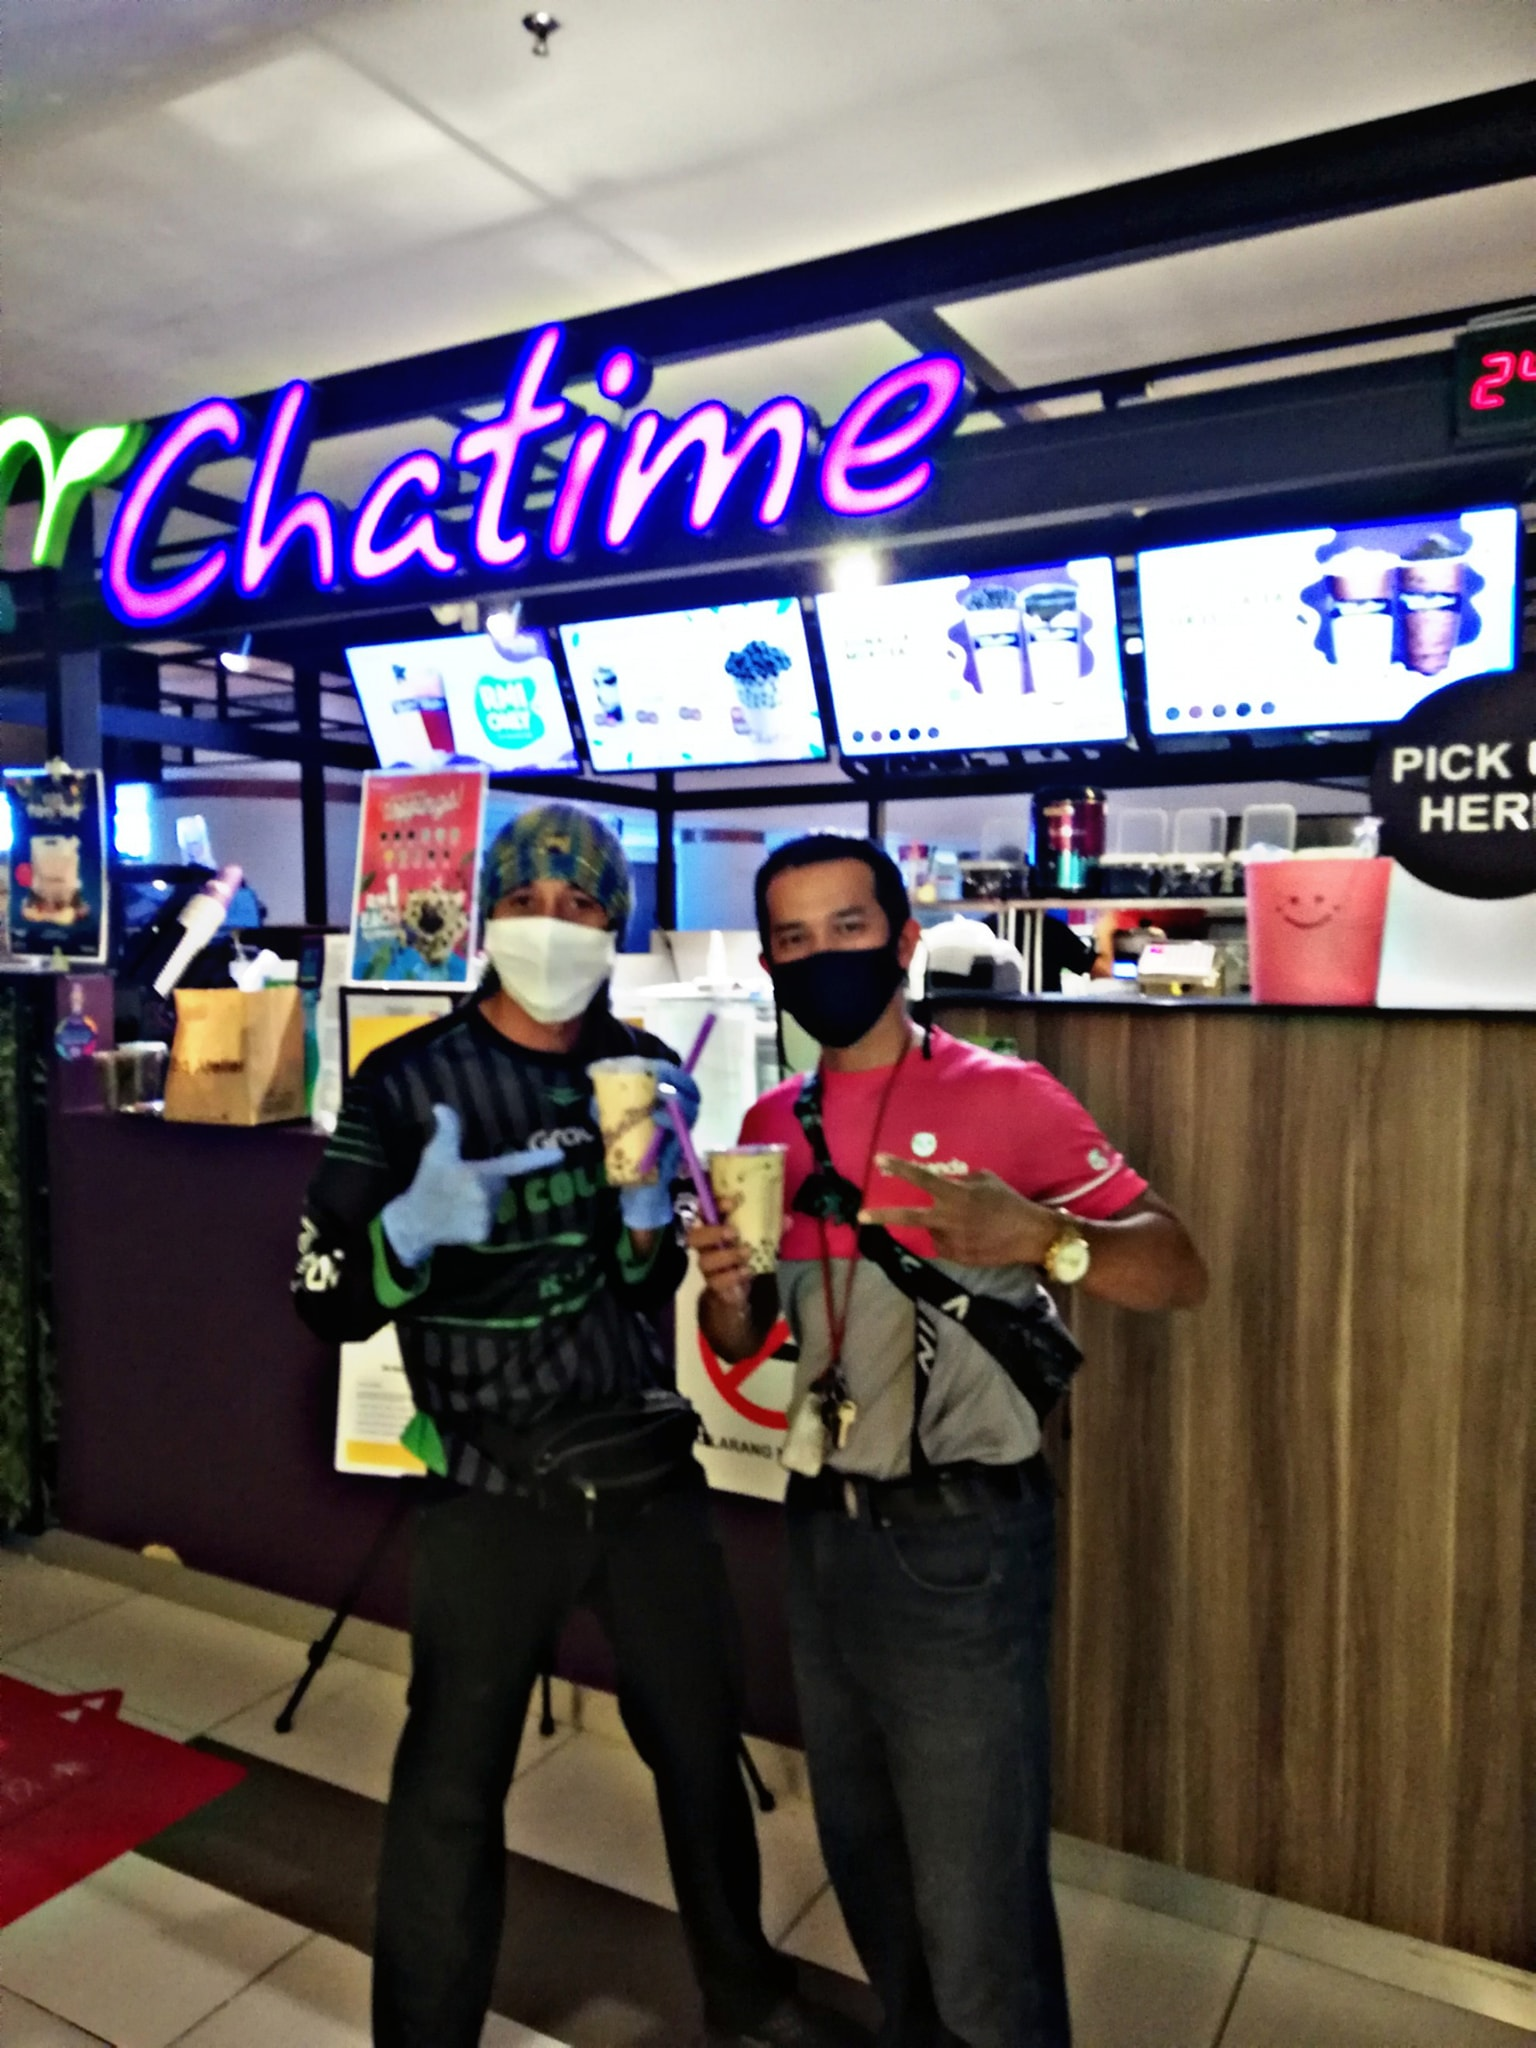 Riders at Chatime